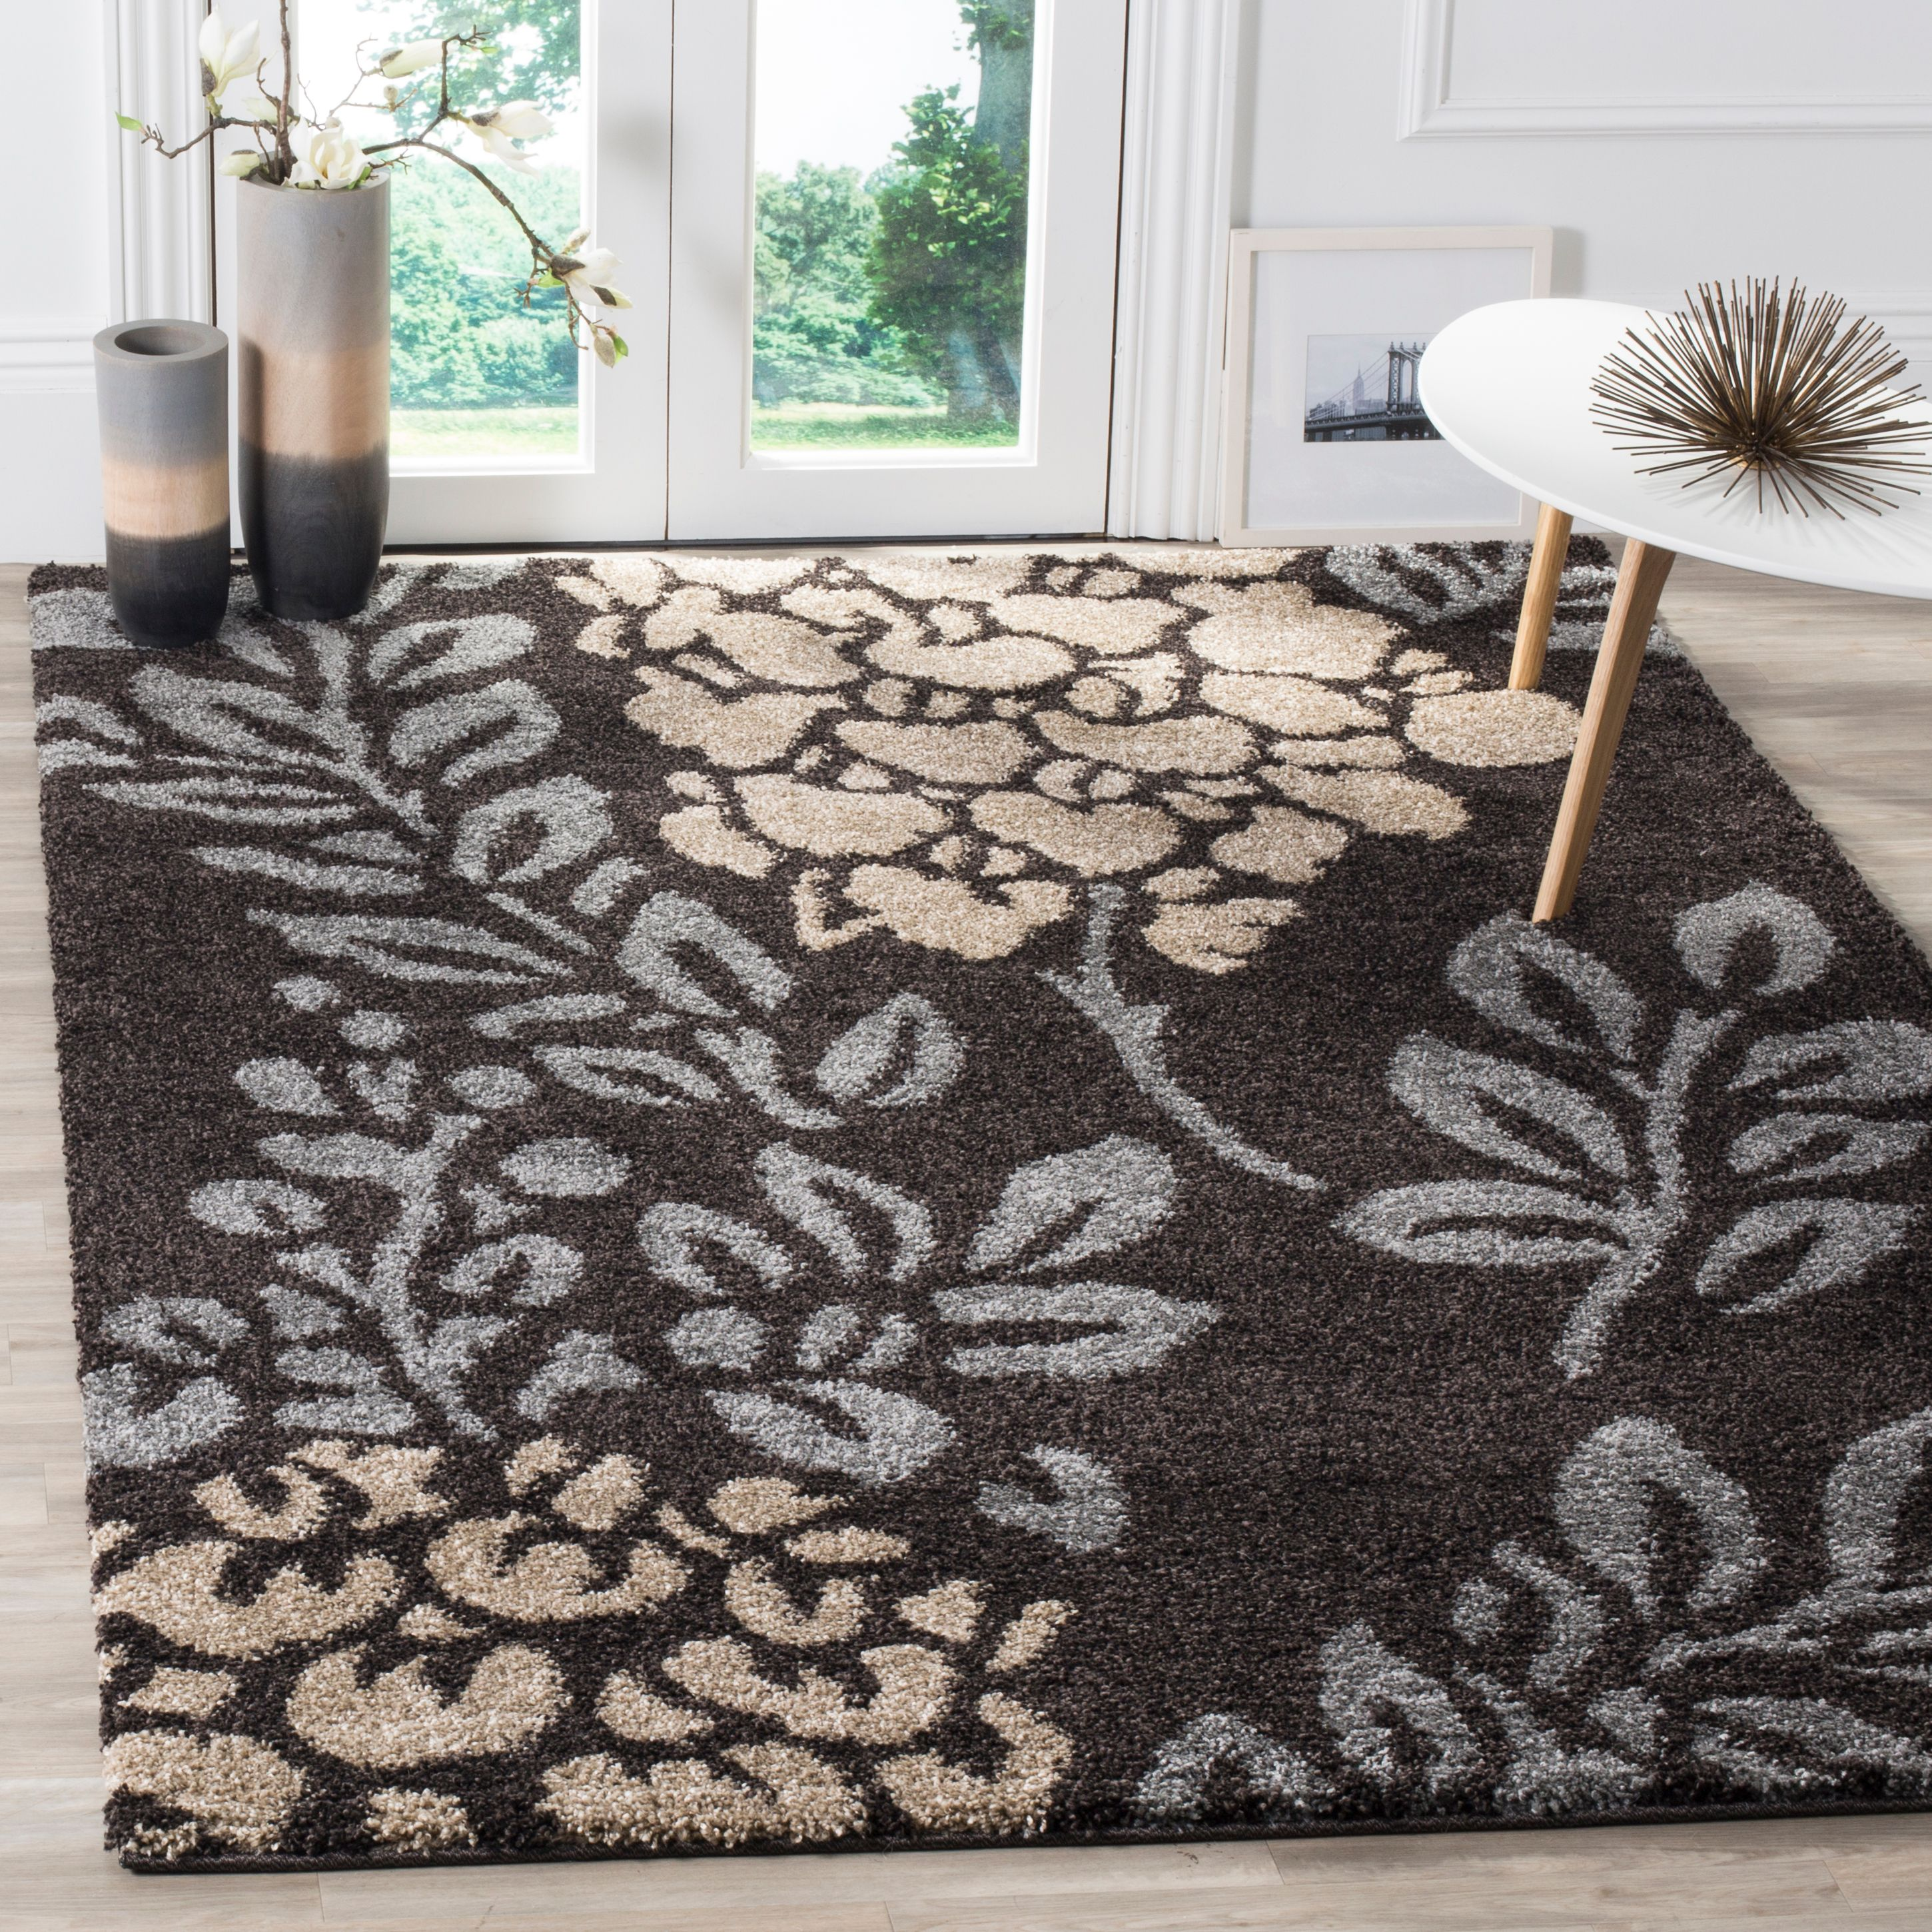 Safavieh Florida Benton Floral Shag Area Rug or Runner